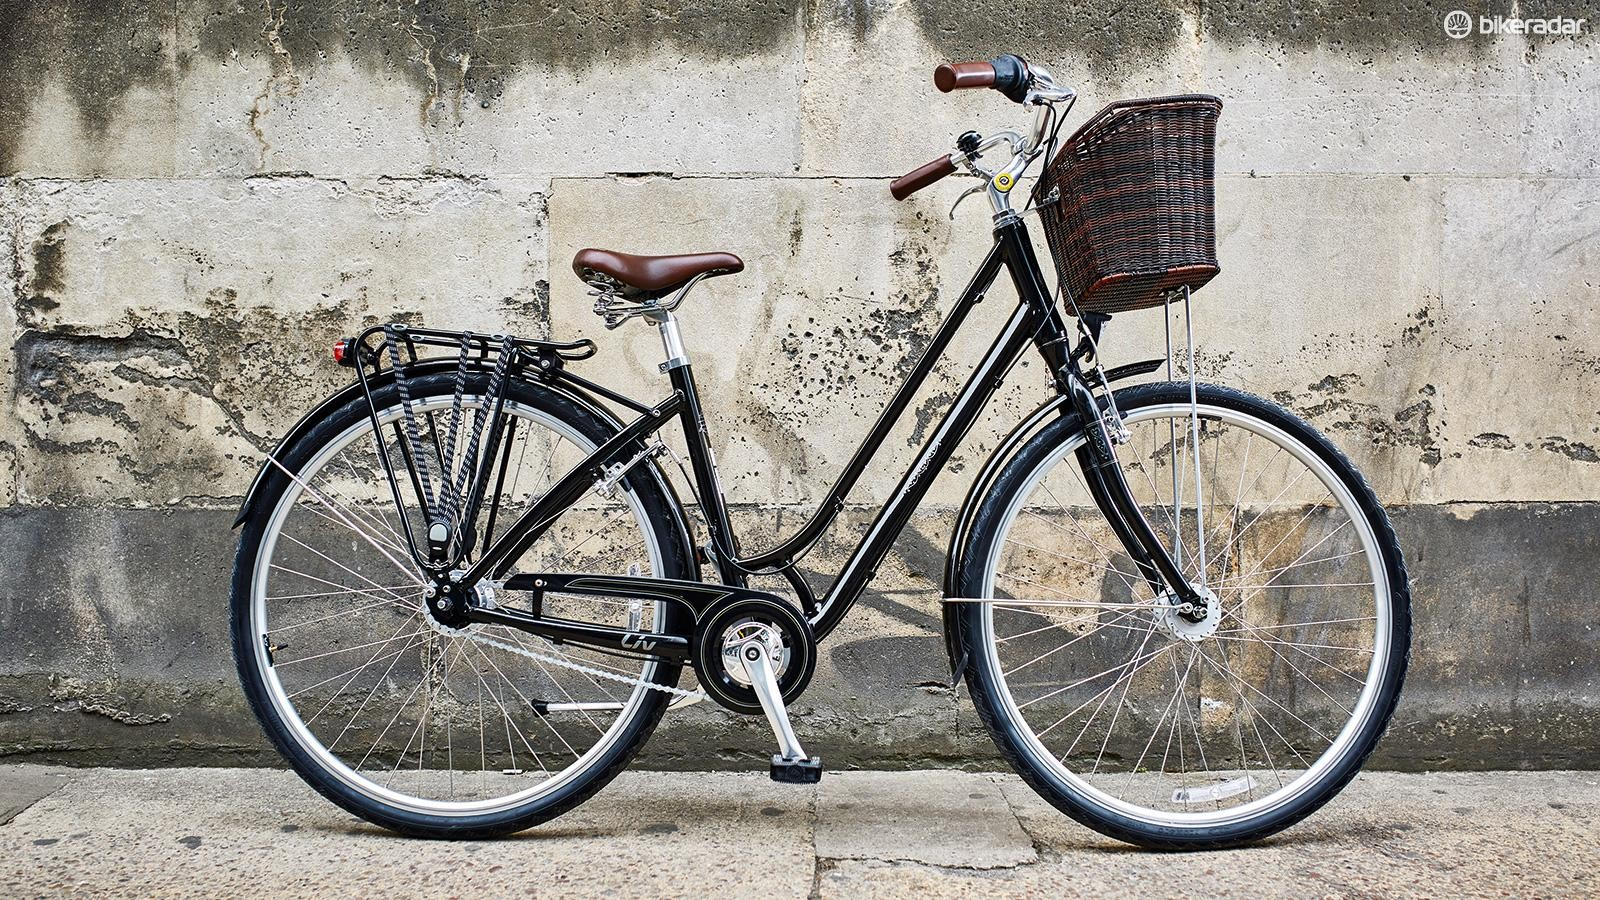 The Liv Flourish 1, an example of the more relaxed commuter bikes that Liv also makes